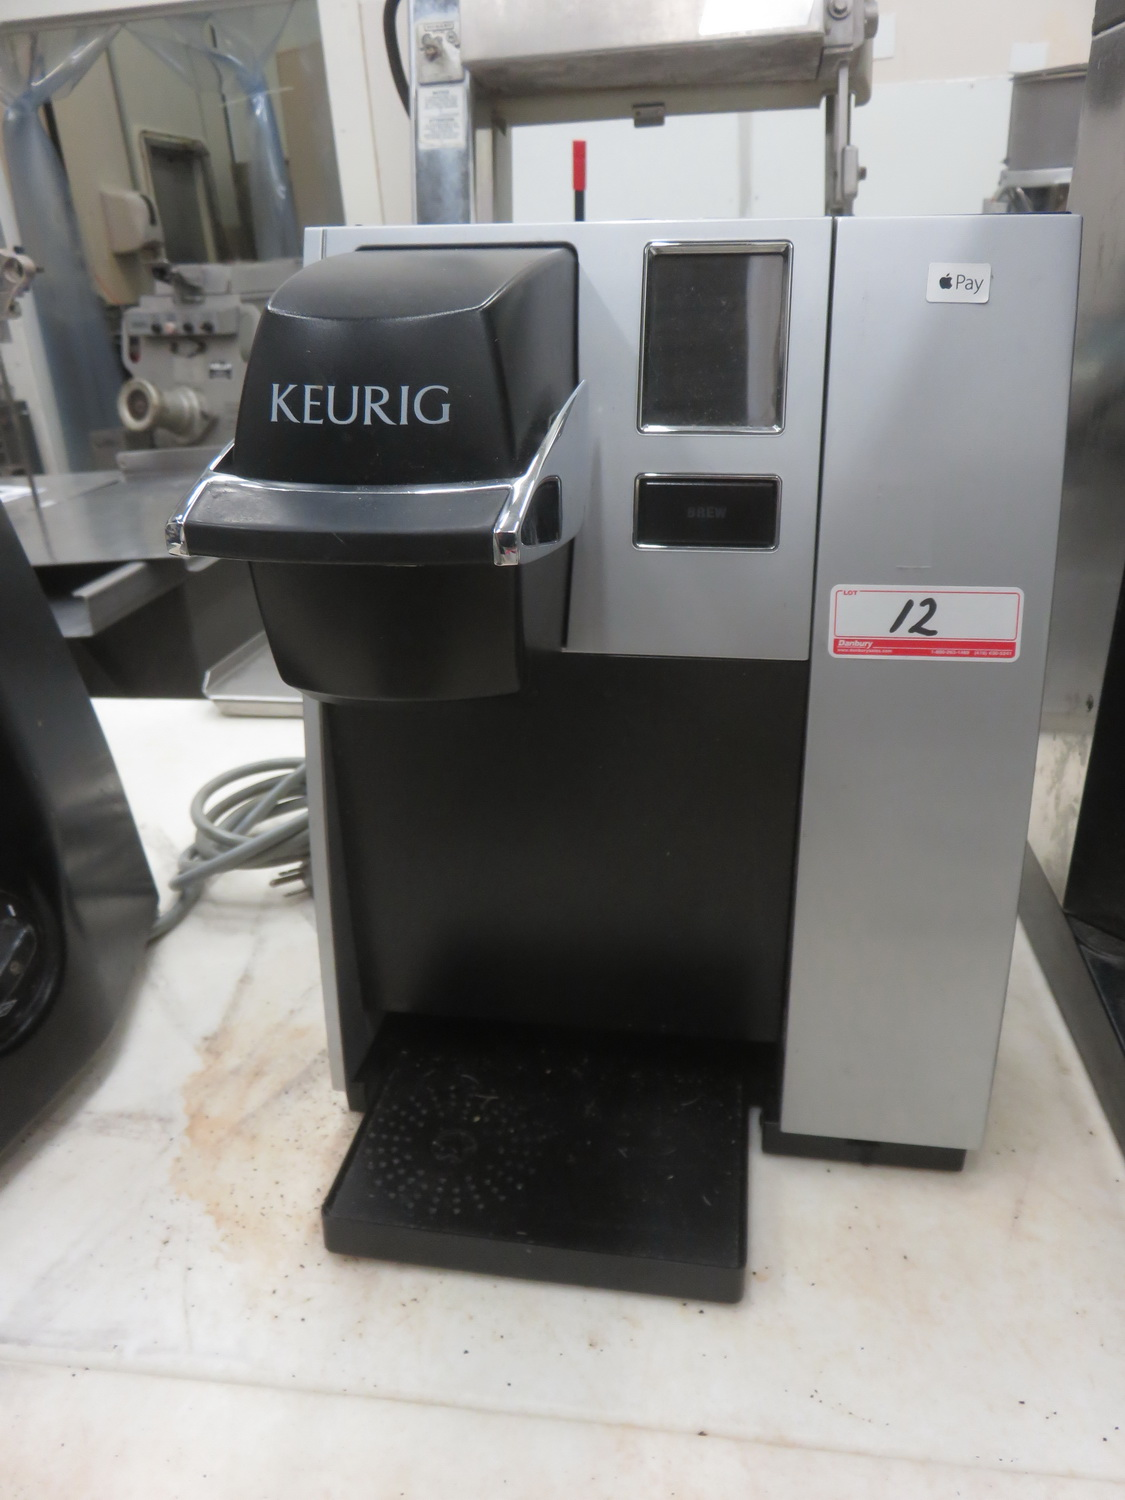 KEURIG K150 COMMERCIAL BREWING SYSTEM